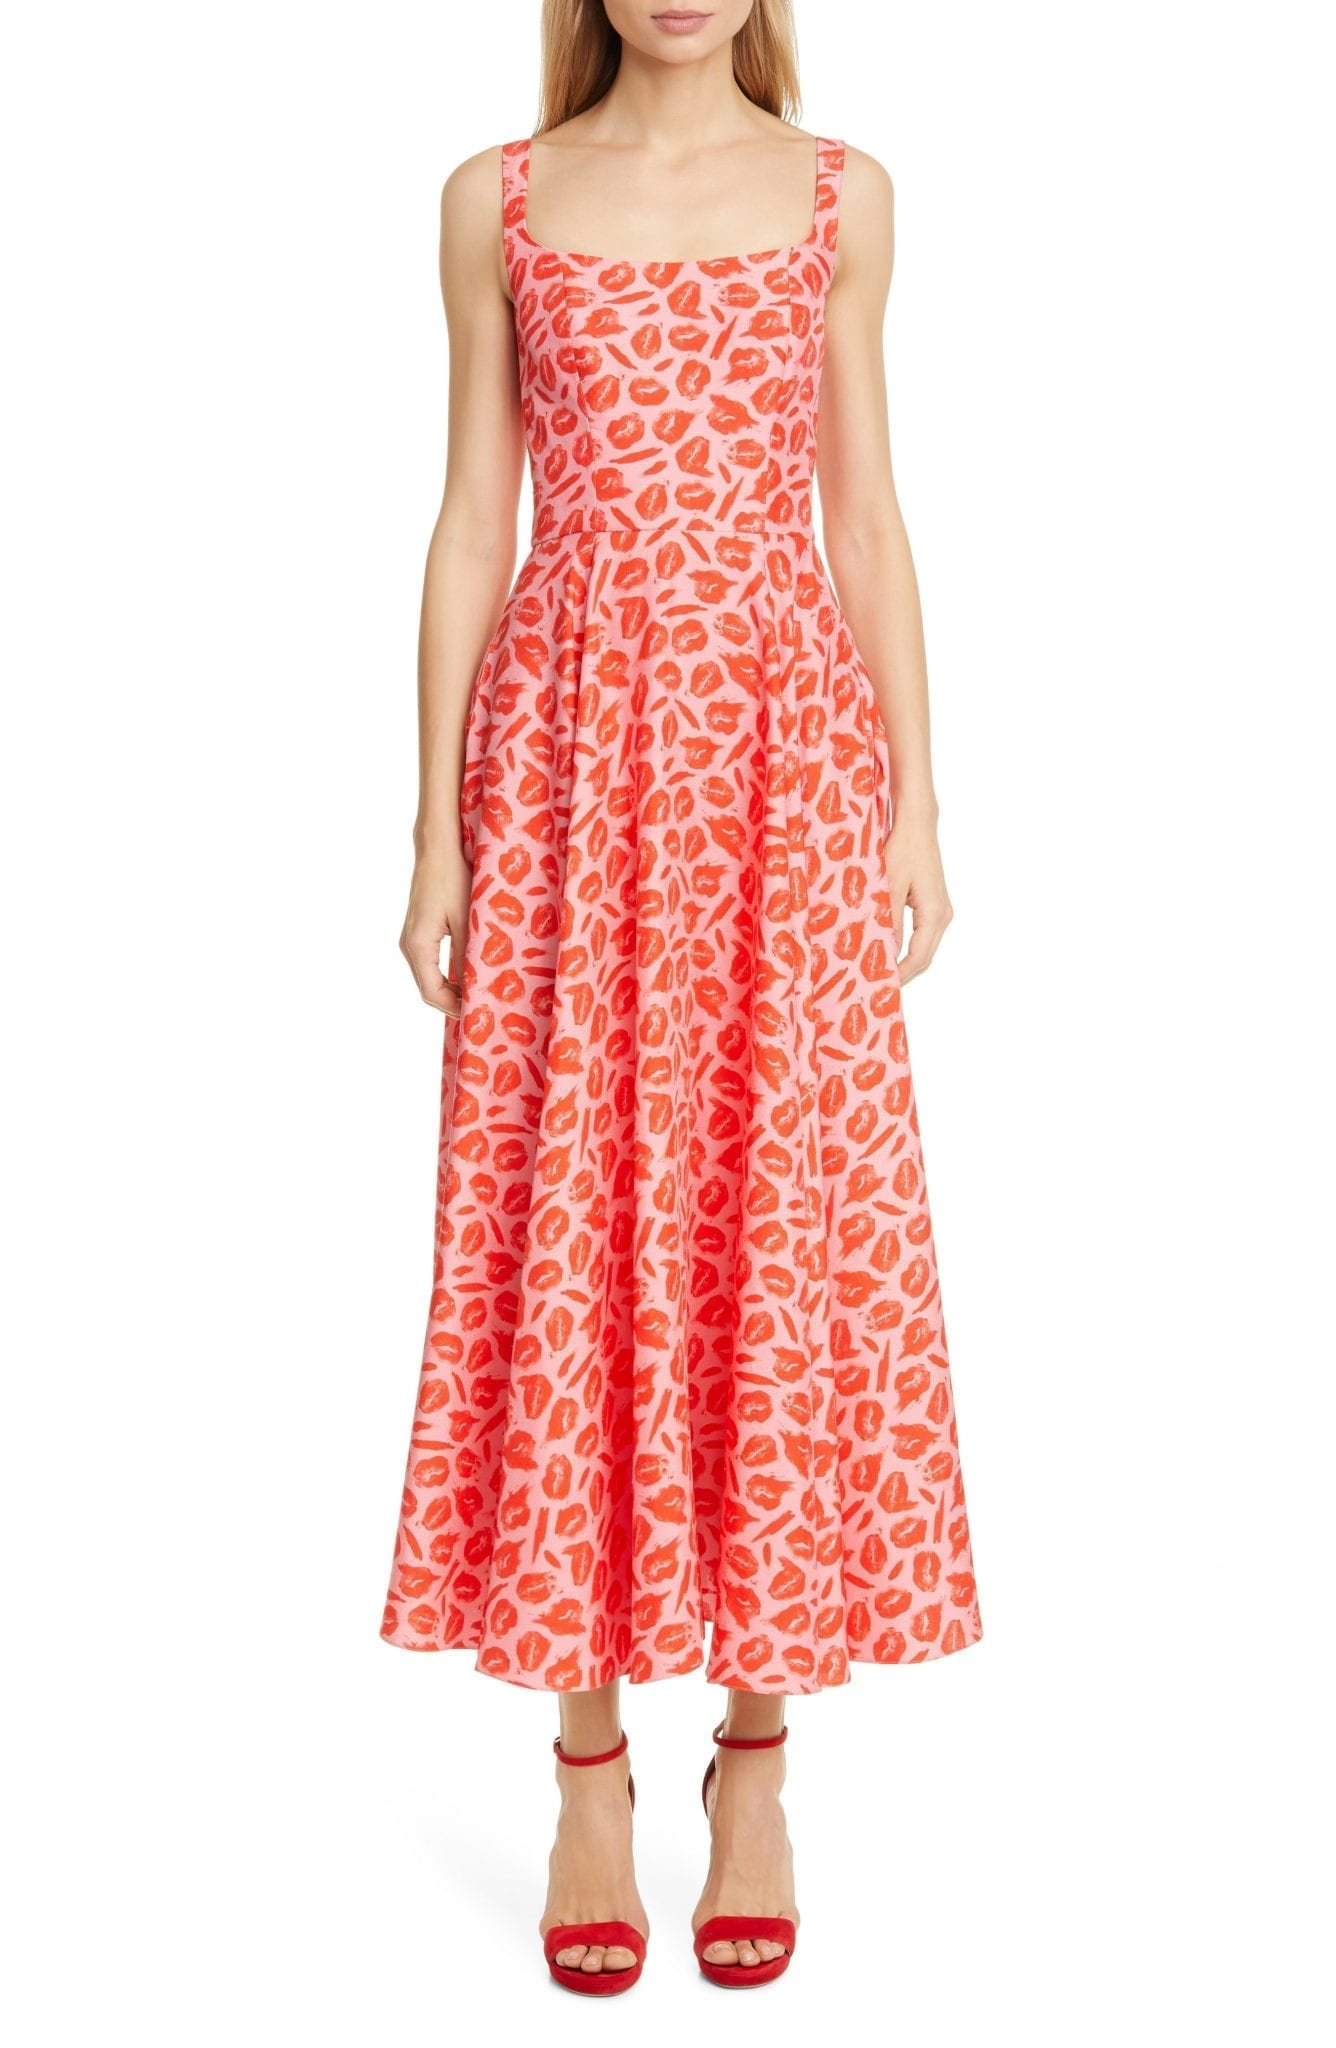 BRANDON MAXWELL Lip Print Fit & Flare Dress